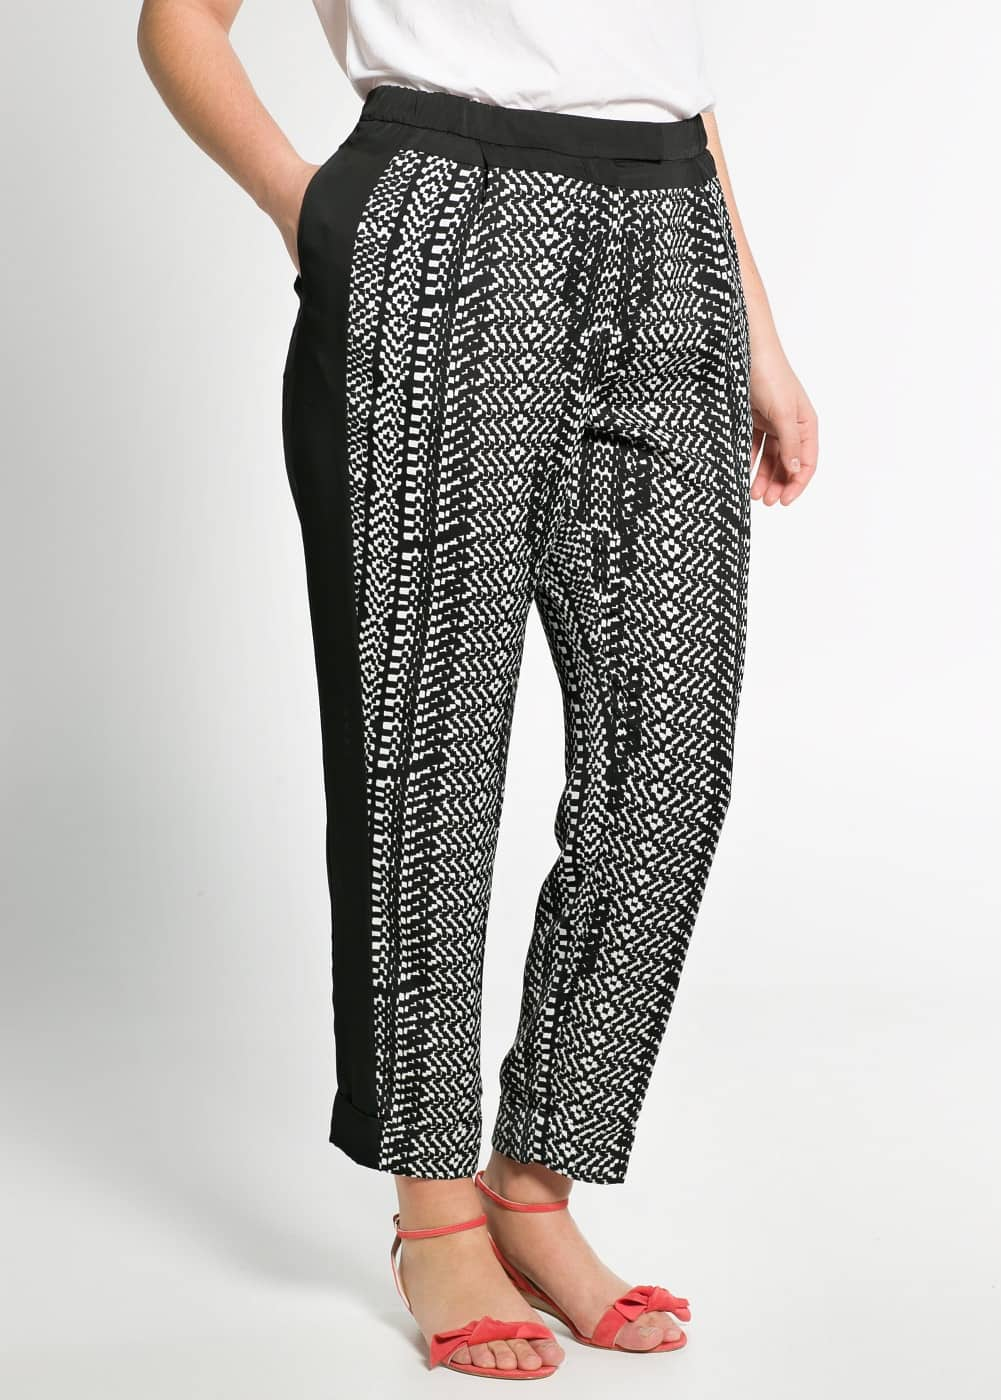 Monochrome baggy trousers